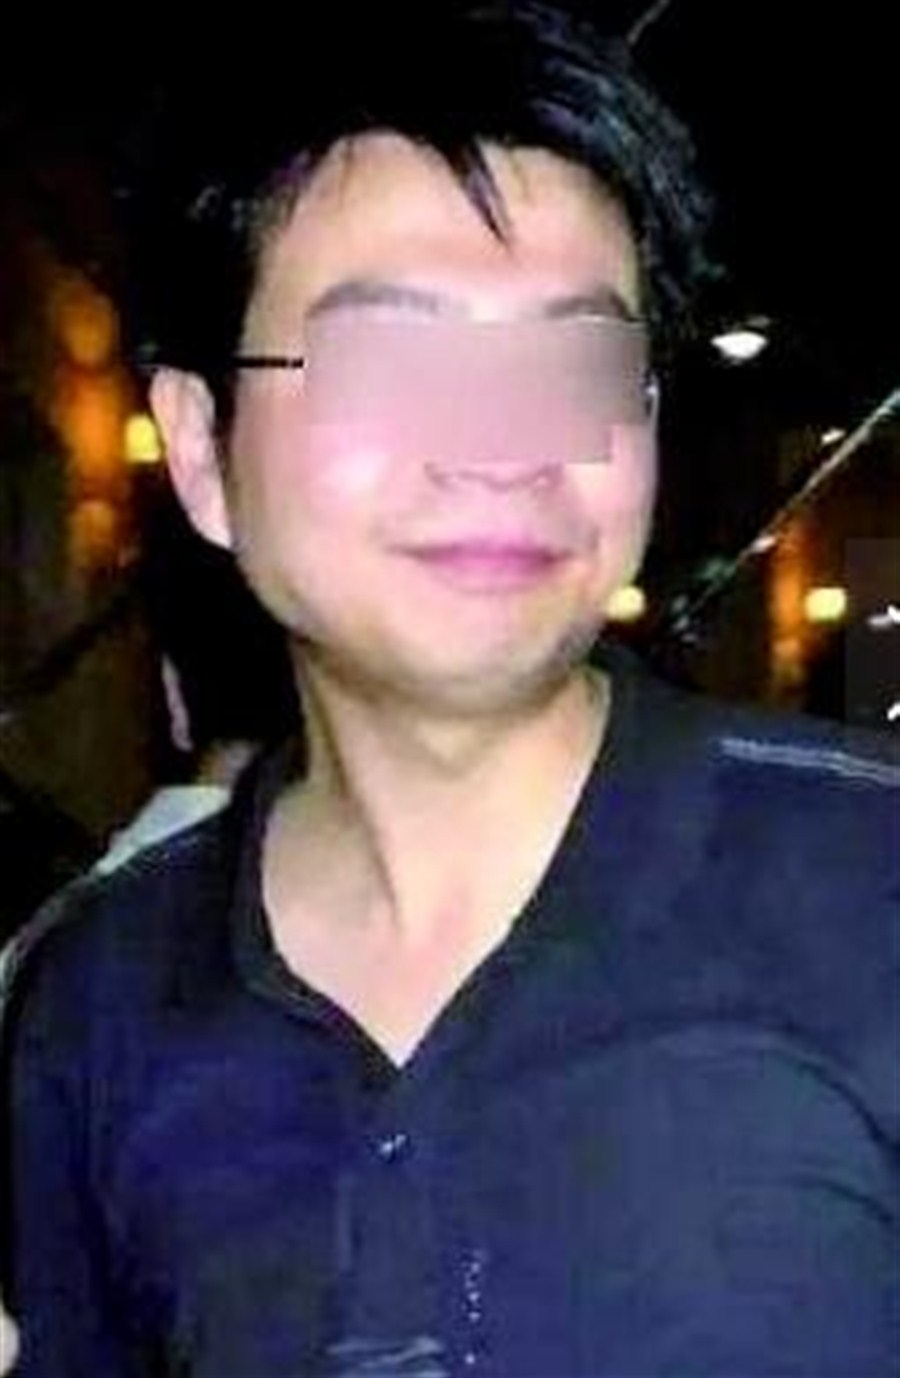 Nanfang Daily journalist arrested for raping intern